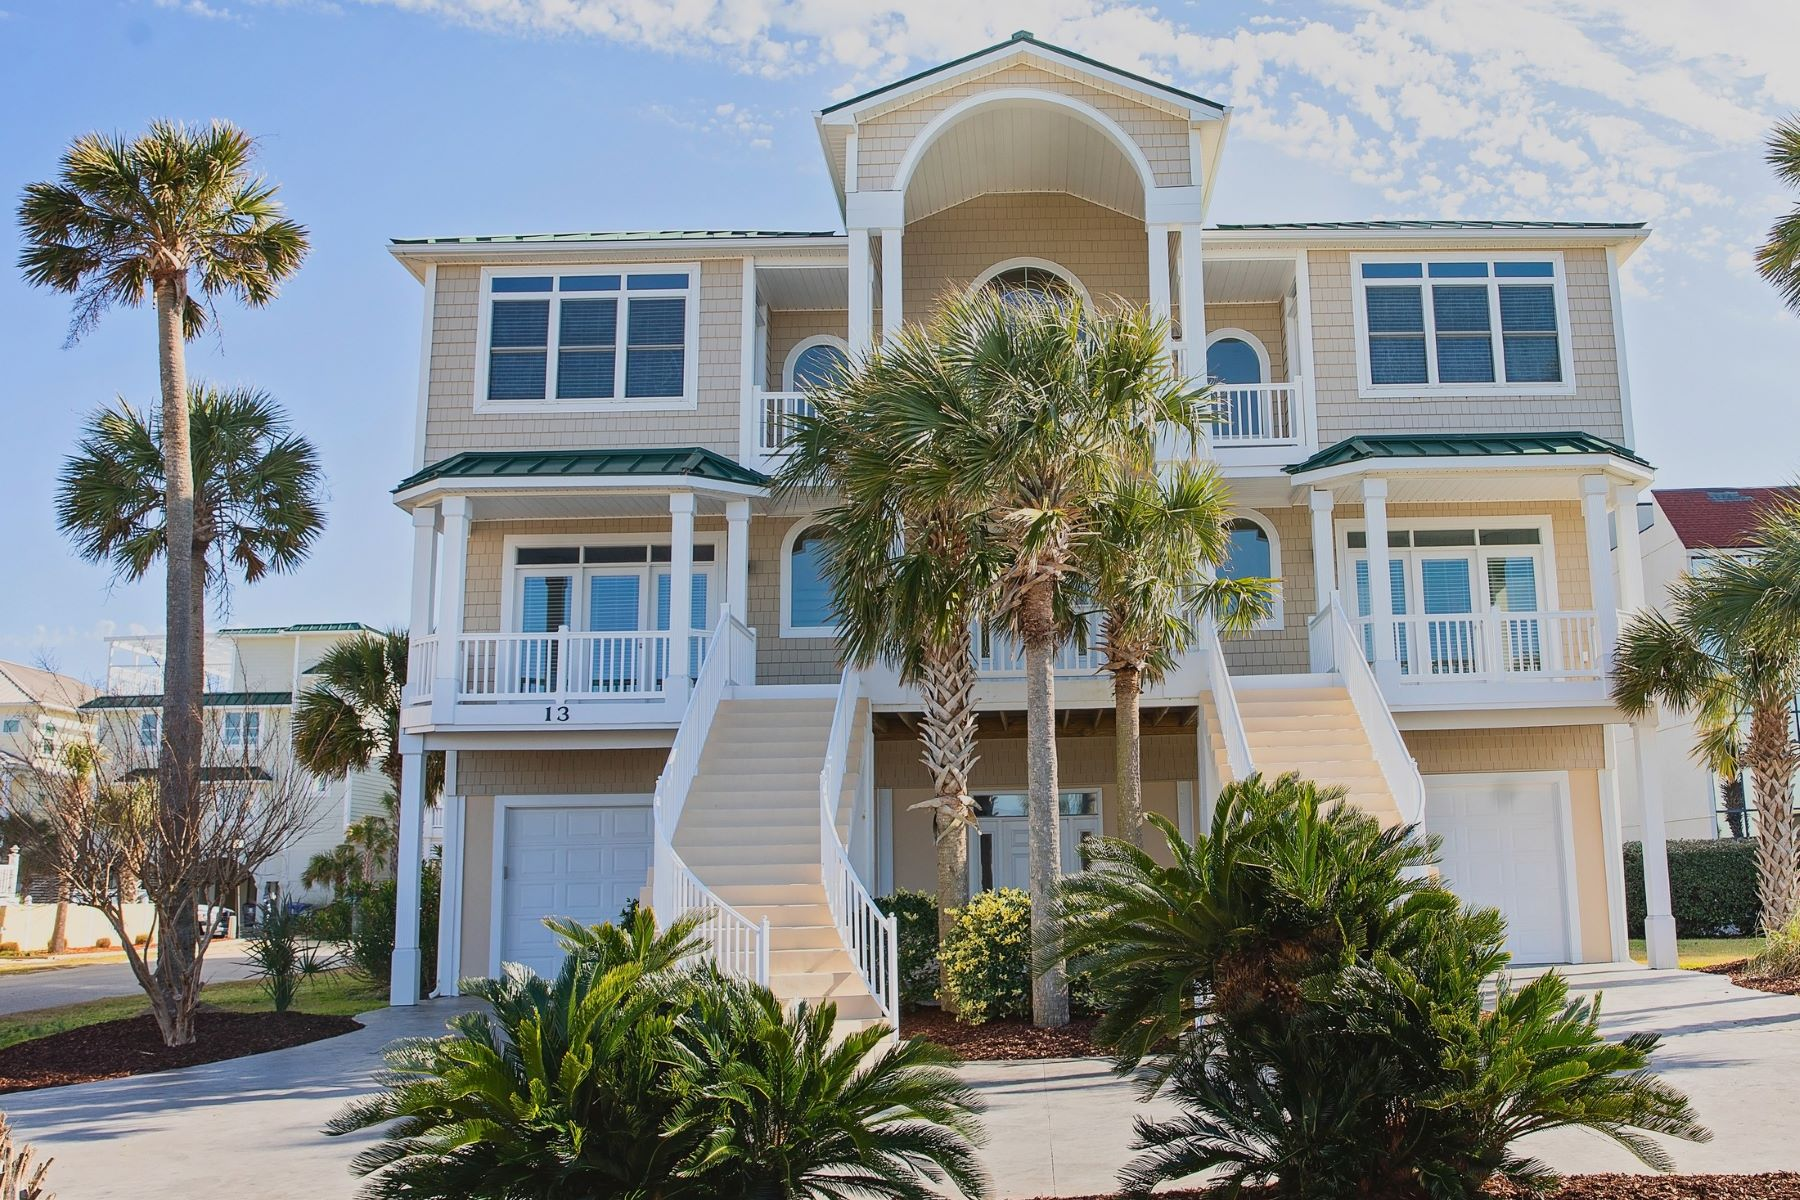 Single Family Homes for Active at Luxurious Coastal Living in Private Gated Community 13 Coggeshall Drive Ocean Isle Beach, North Carolina 28469 United States